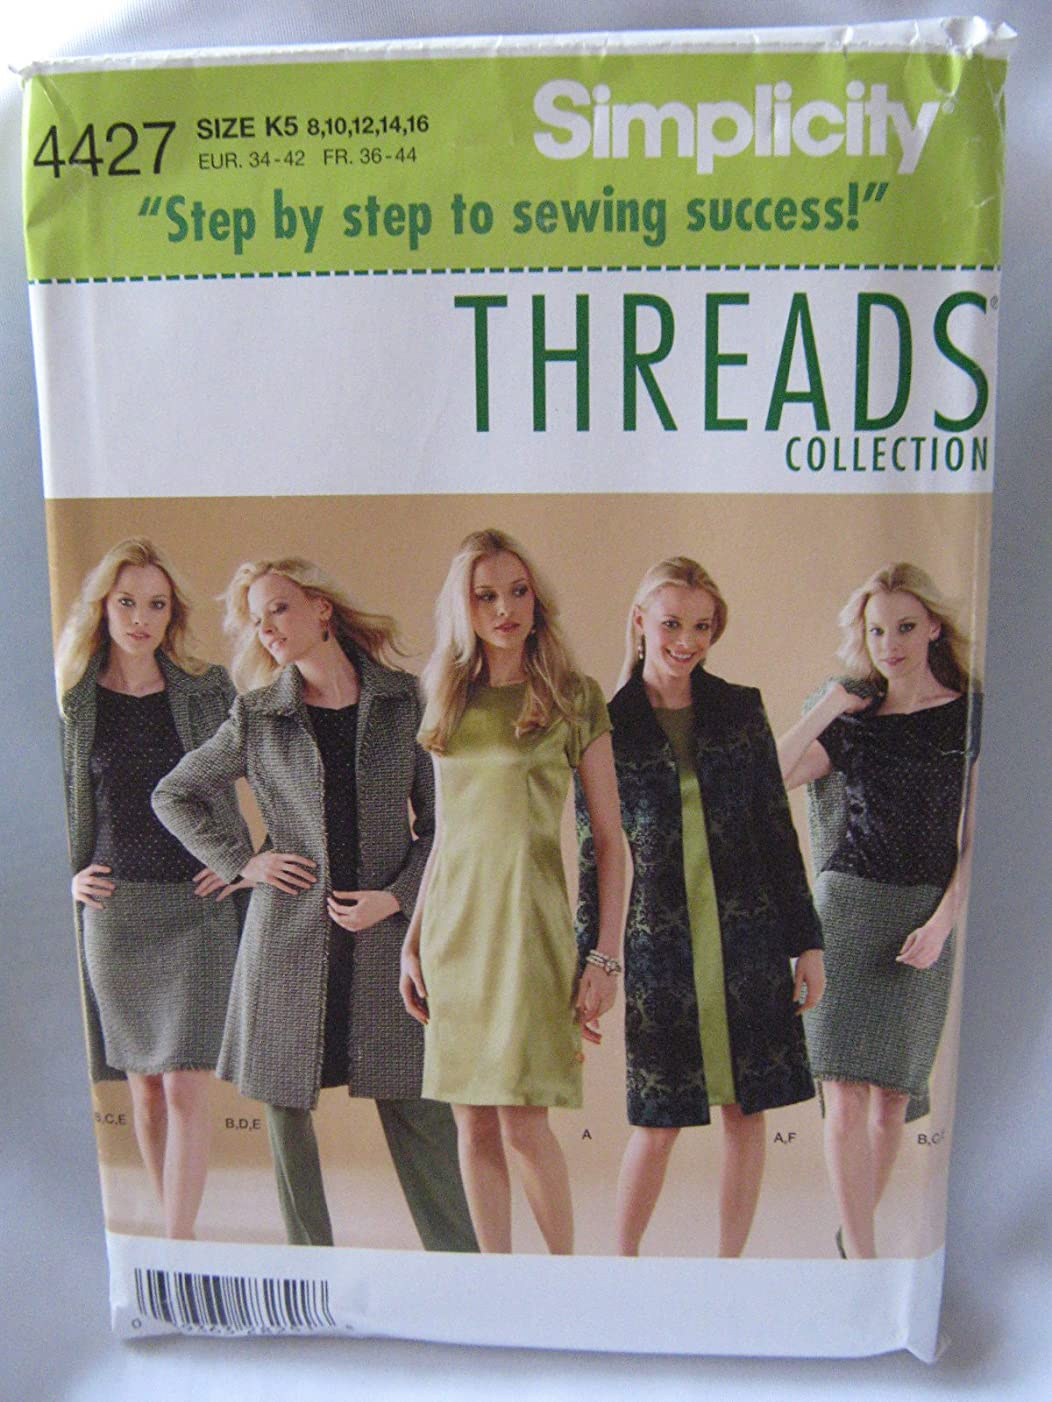 Simplicity 4427 Thread Collections Misses'/Miss Petite Dress or Top, Skirt, Pants and Lined Coat Sizes 8-16